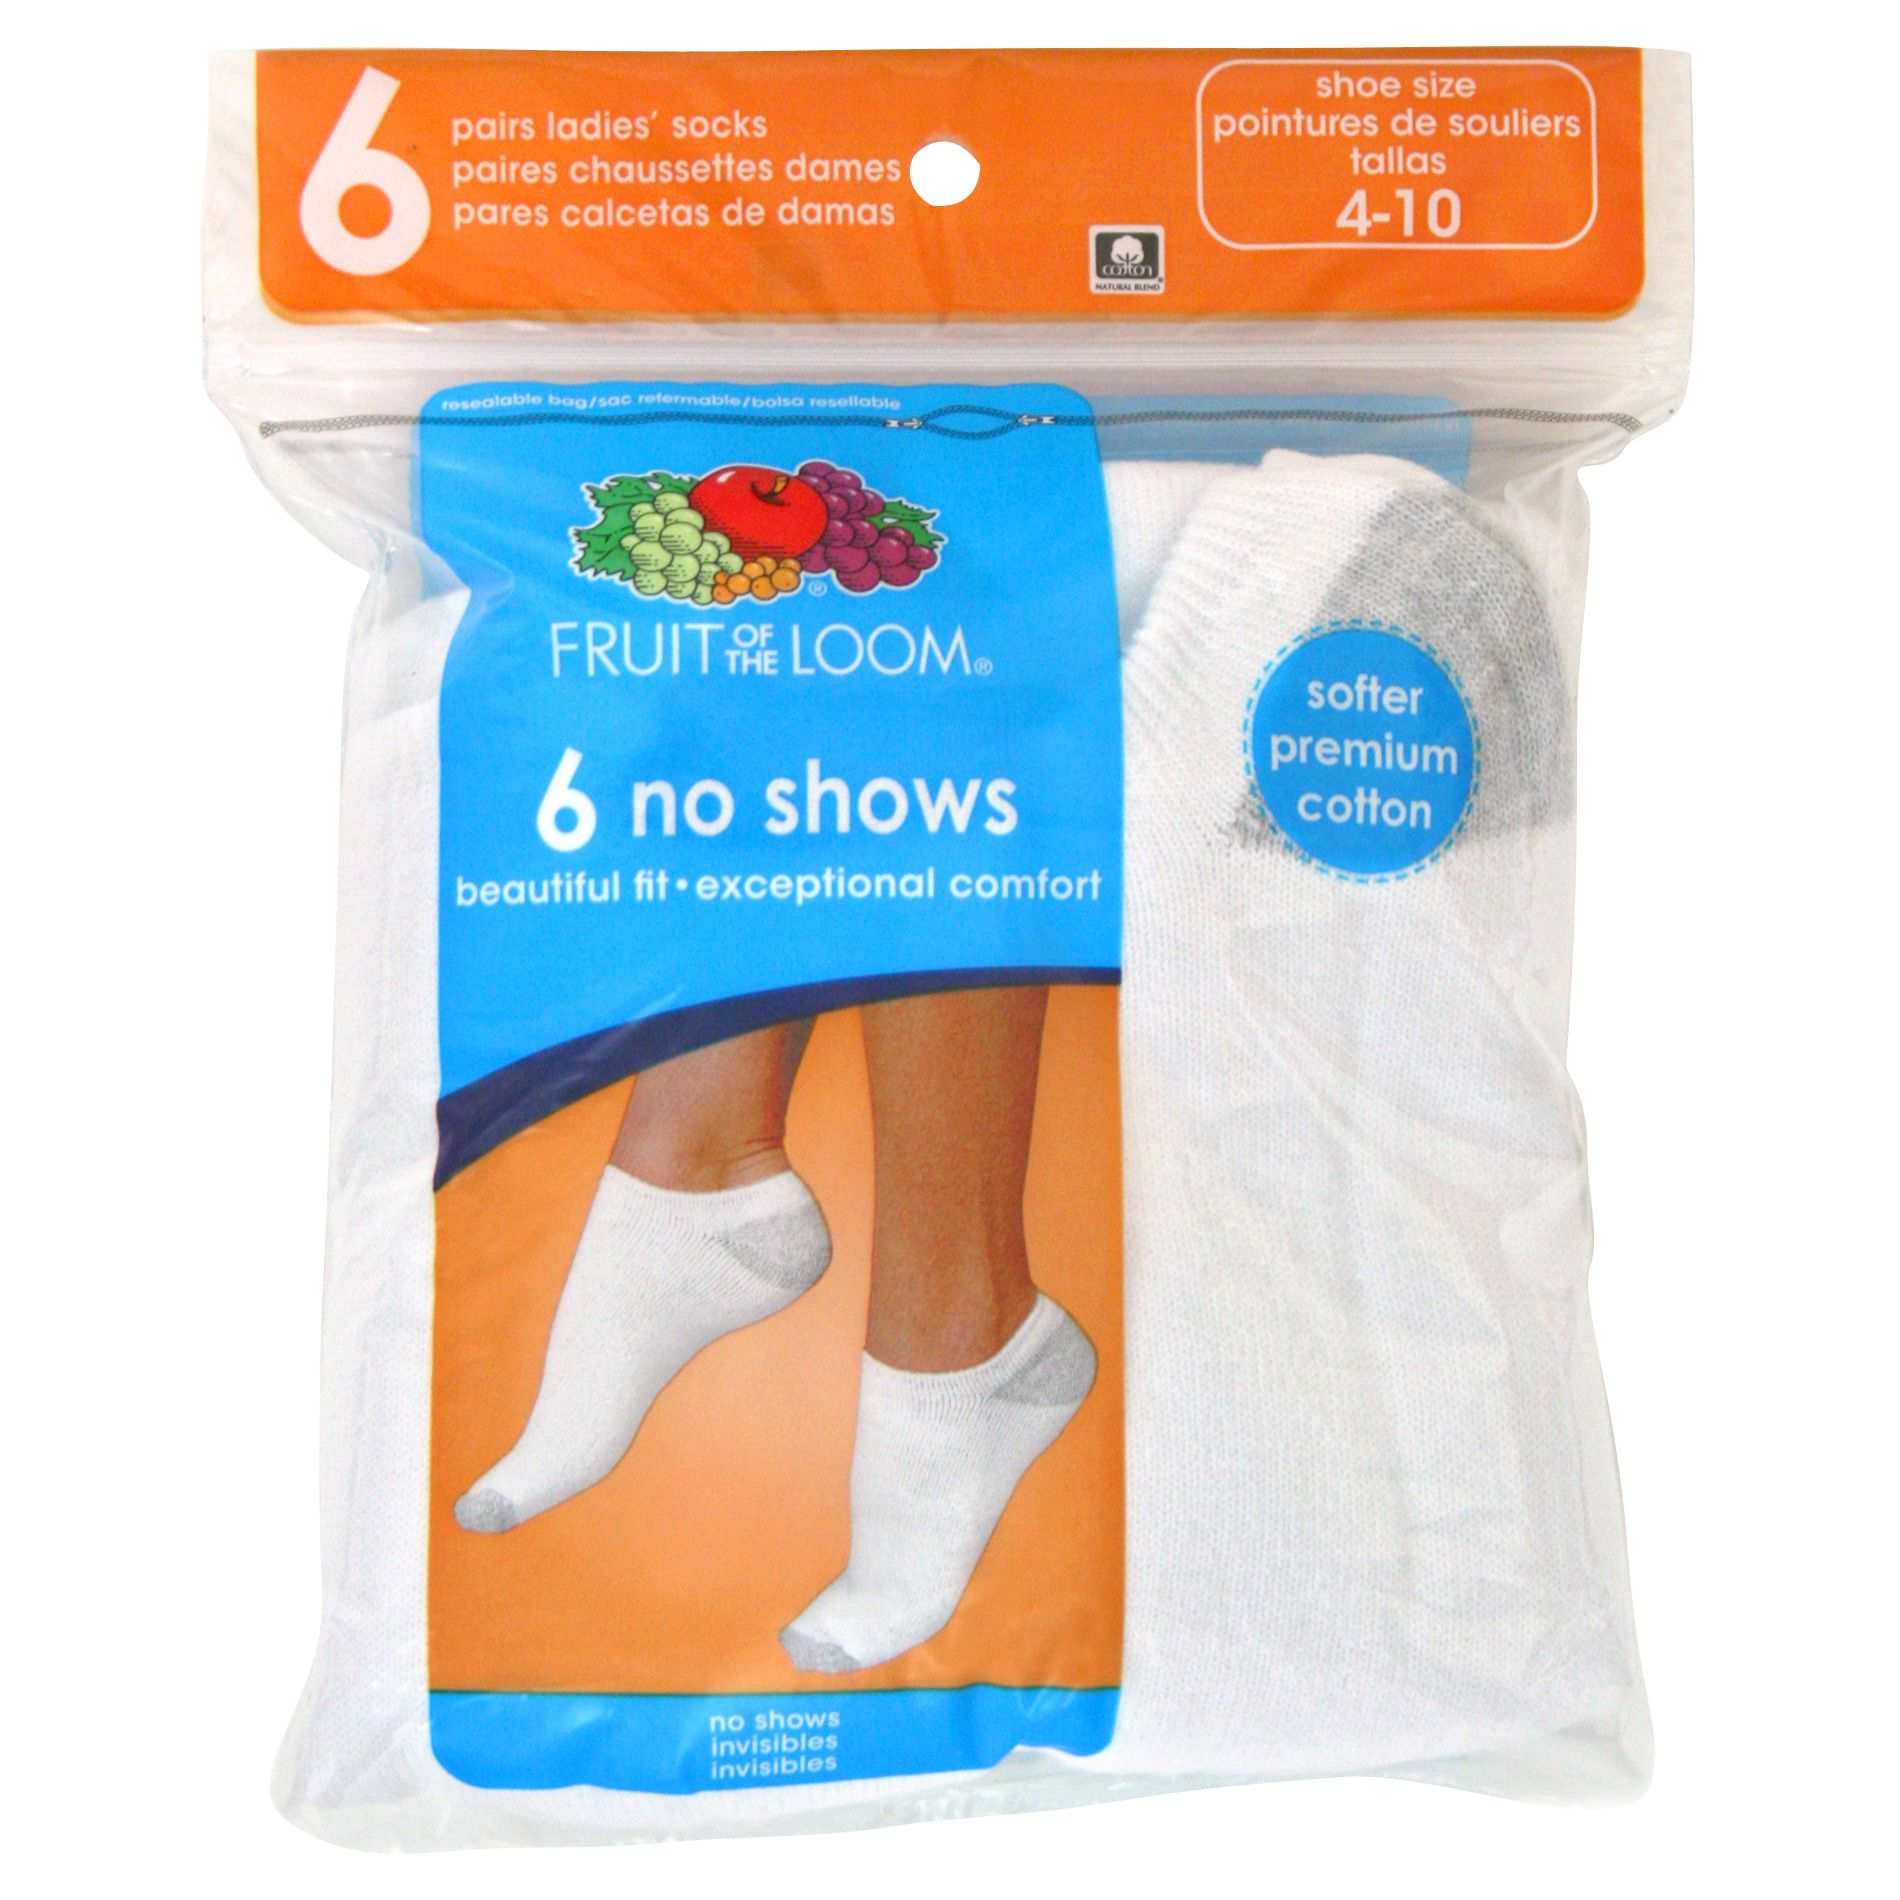 Fruit of the Loom Women's 6-pair White No Show Socks